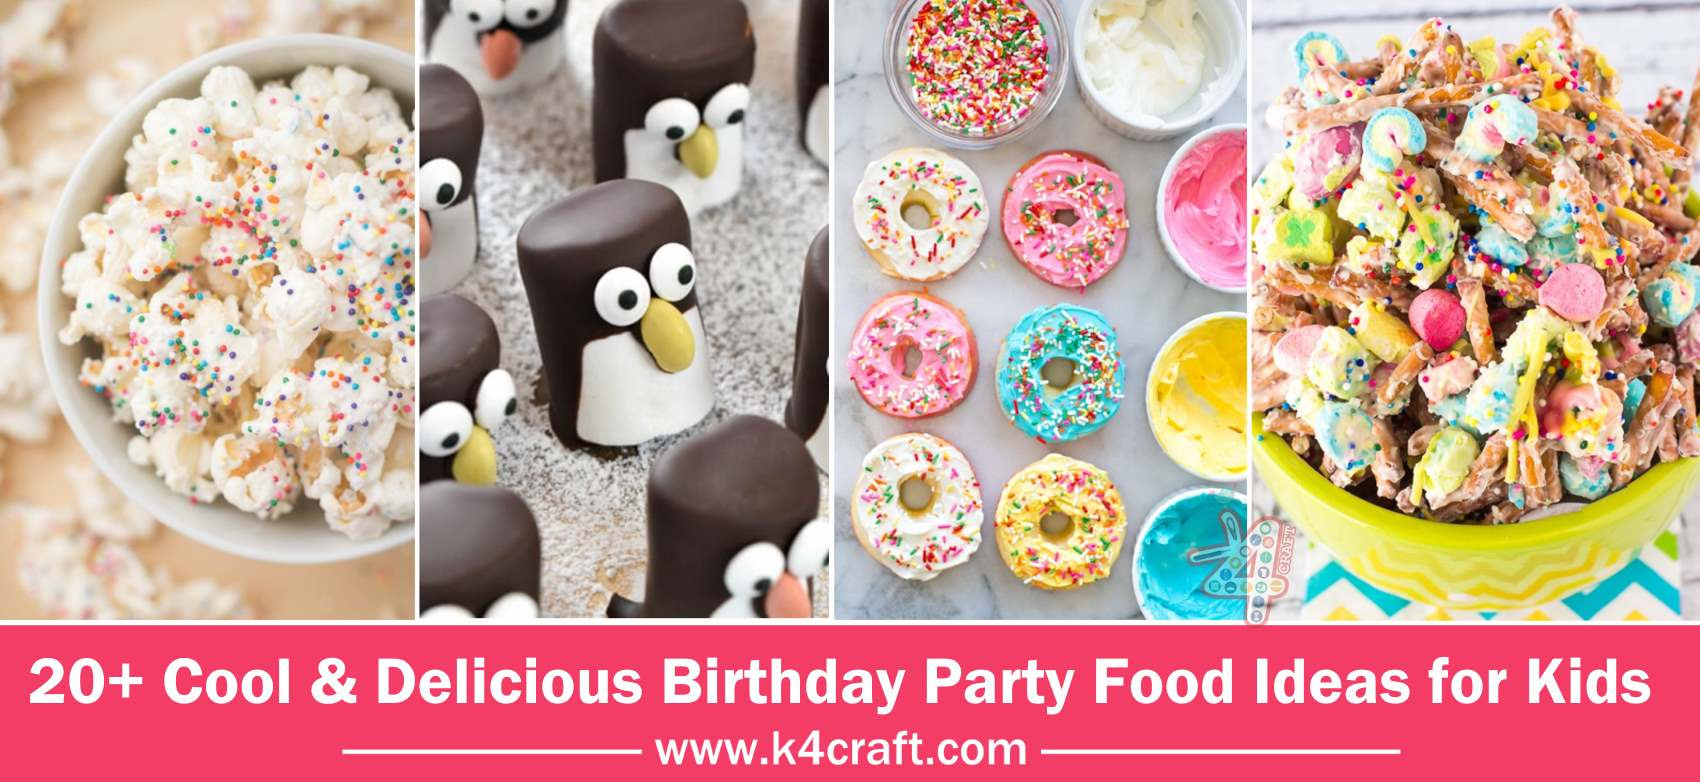 Cool Kids Party Ideas  Cool & Delicious Birthday Party Food Ideas for Kids K4 Craft